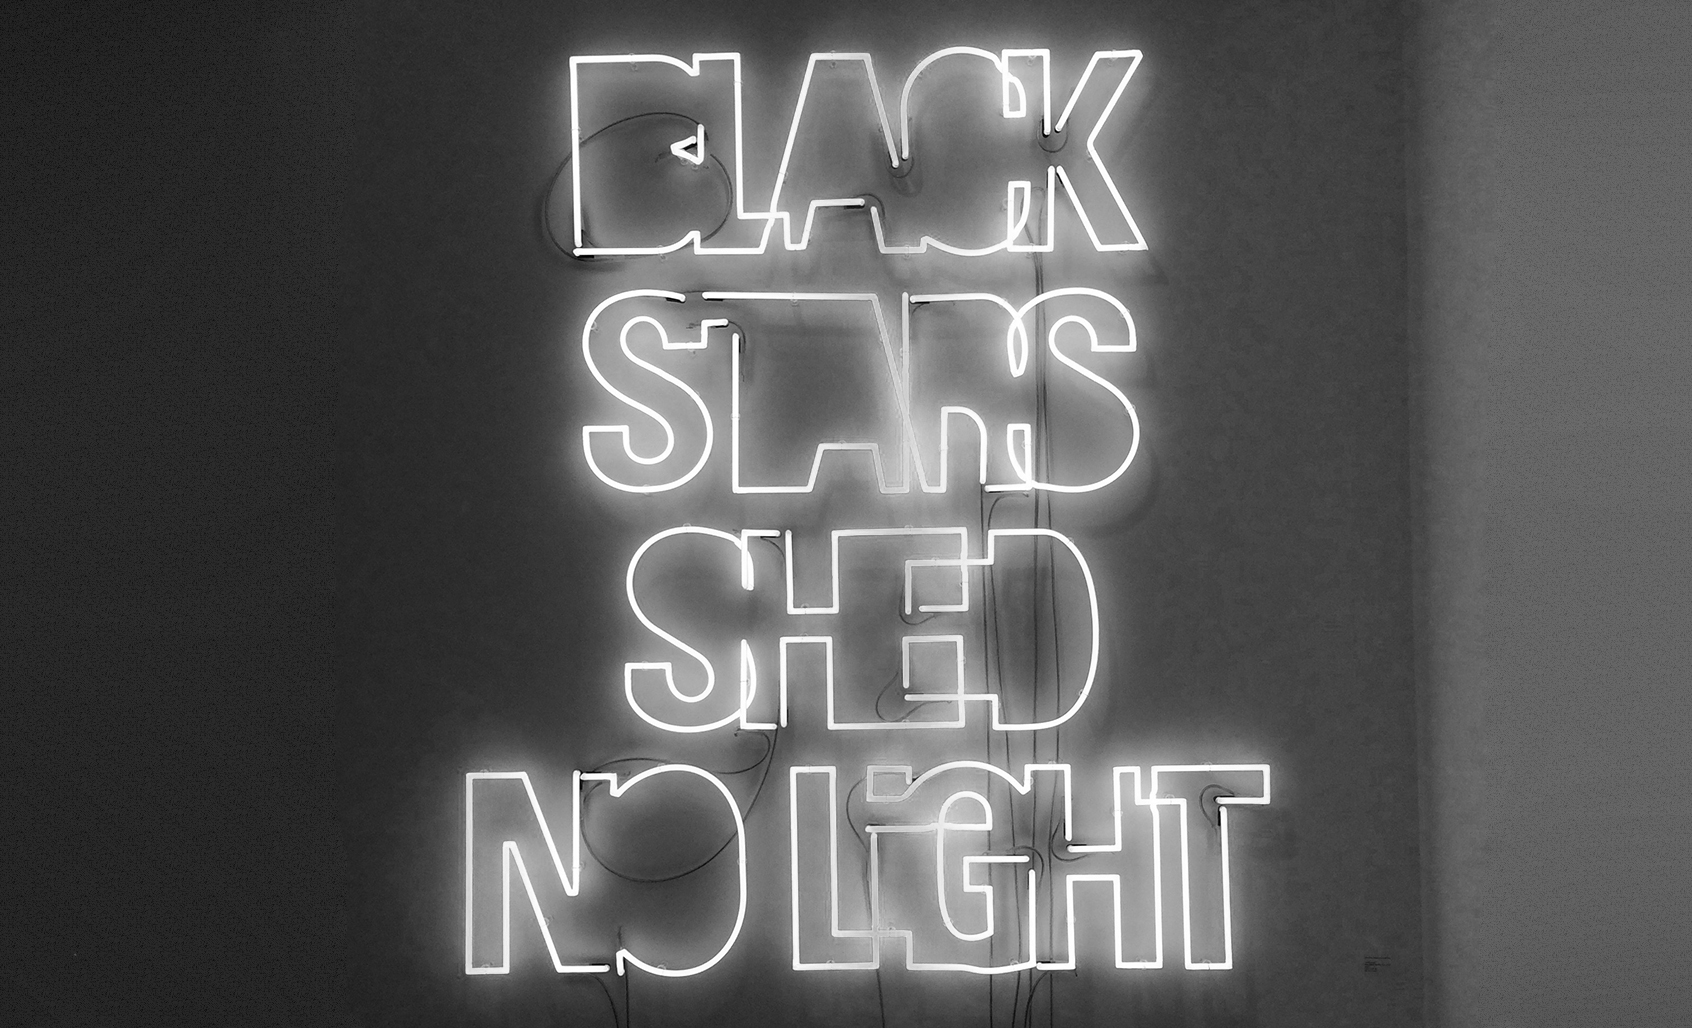 Yael Bartana, Black Stars shed no light, 2014 @ Galerie Raffaella Cortese FIAC 2016. Image © Araso